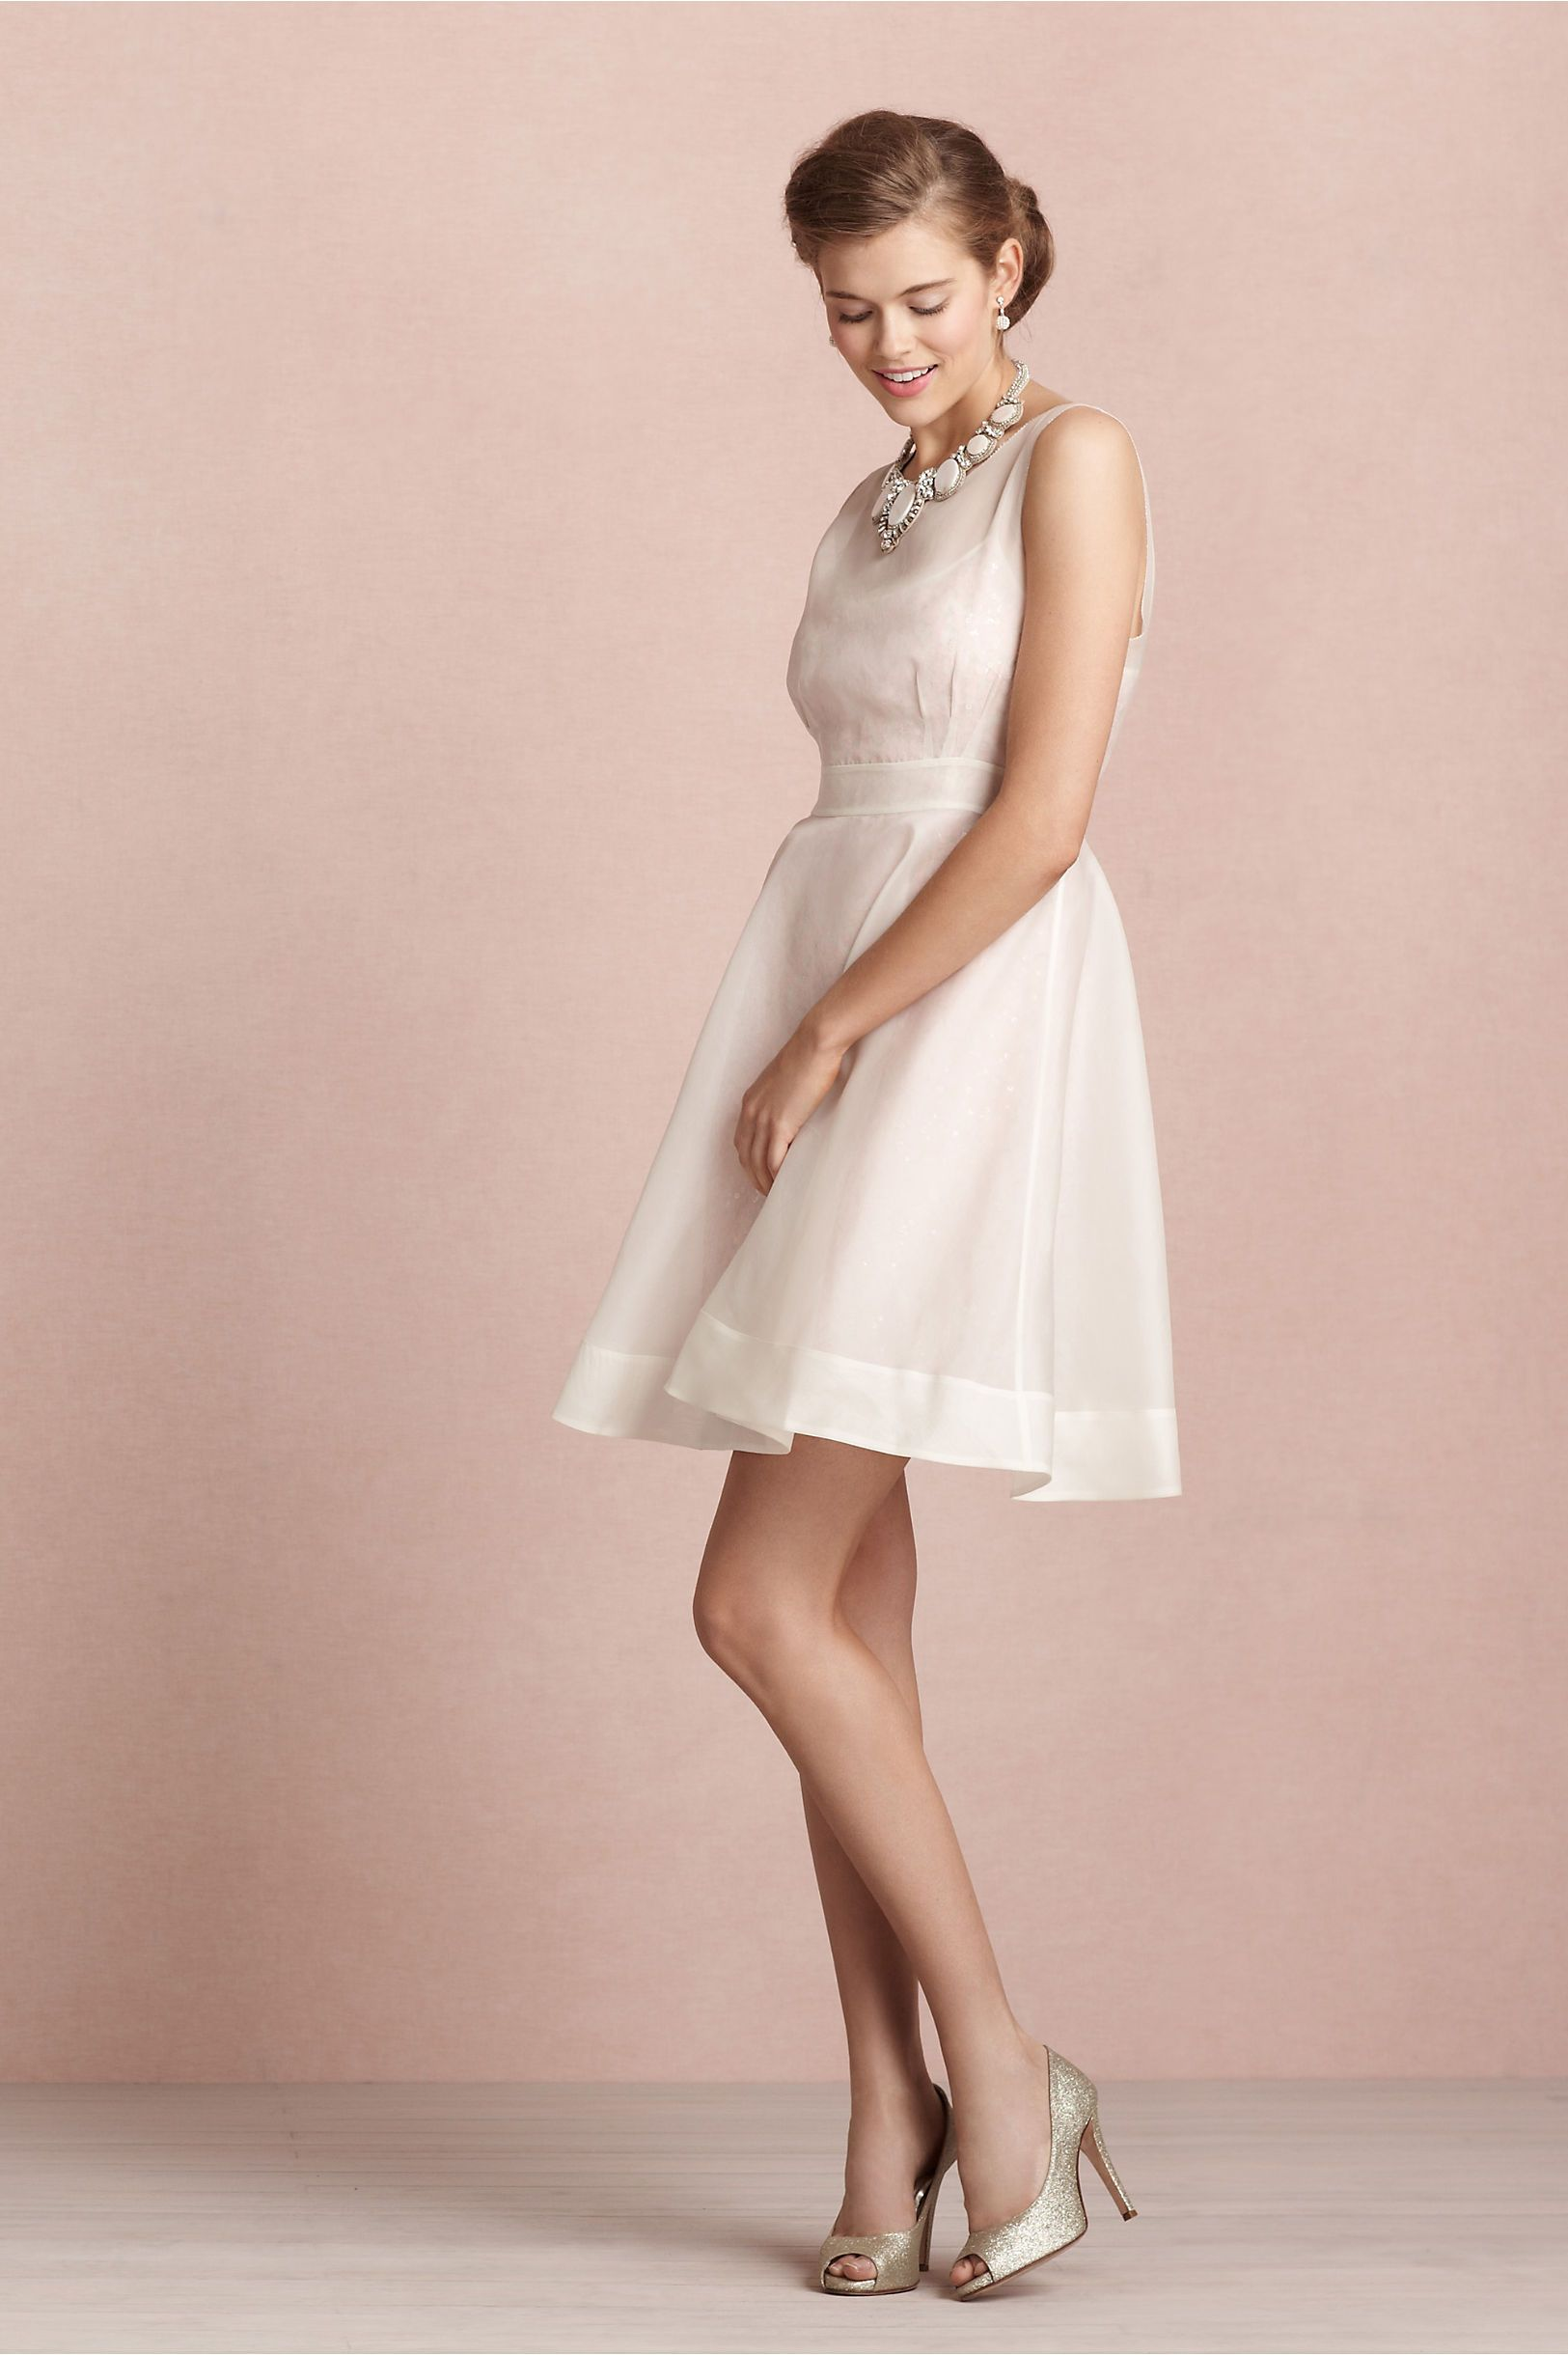 Moonlit Peep-Toes in Shoes & Accessories Shoes at BHLDN | vestidos ...